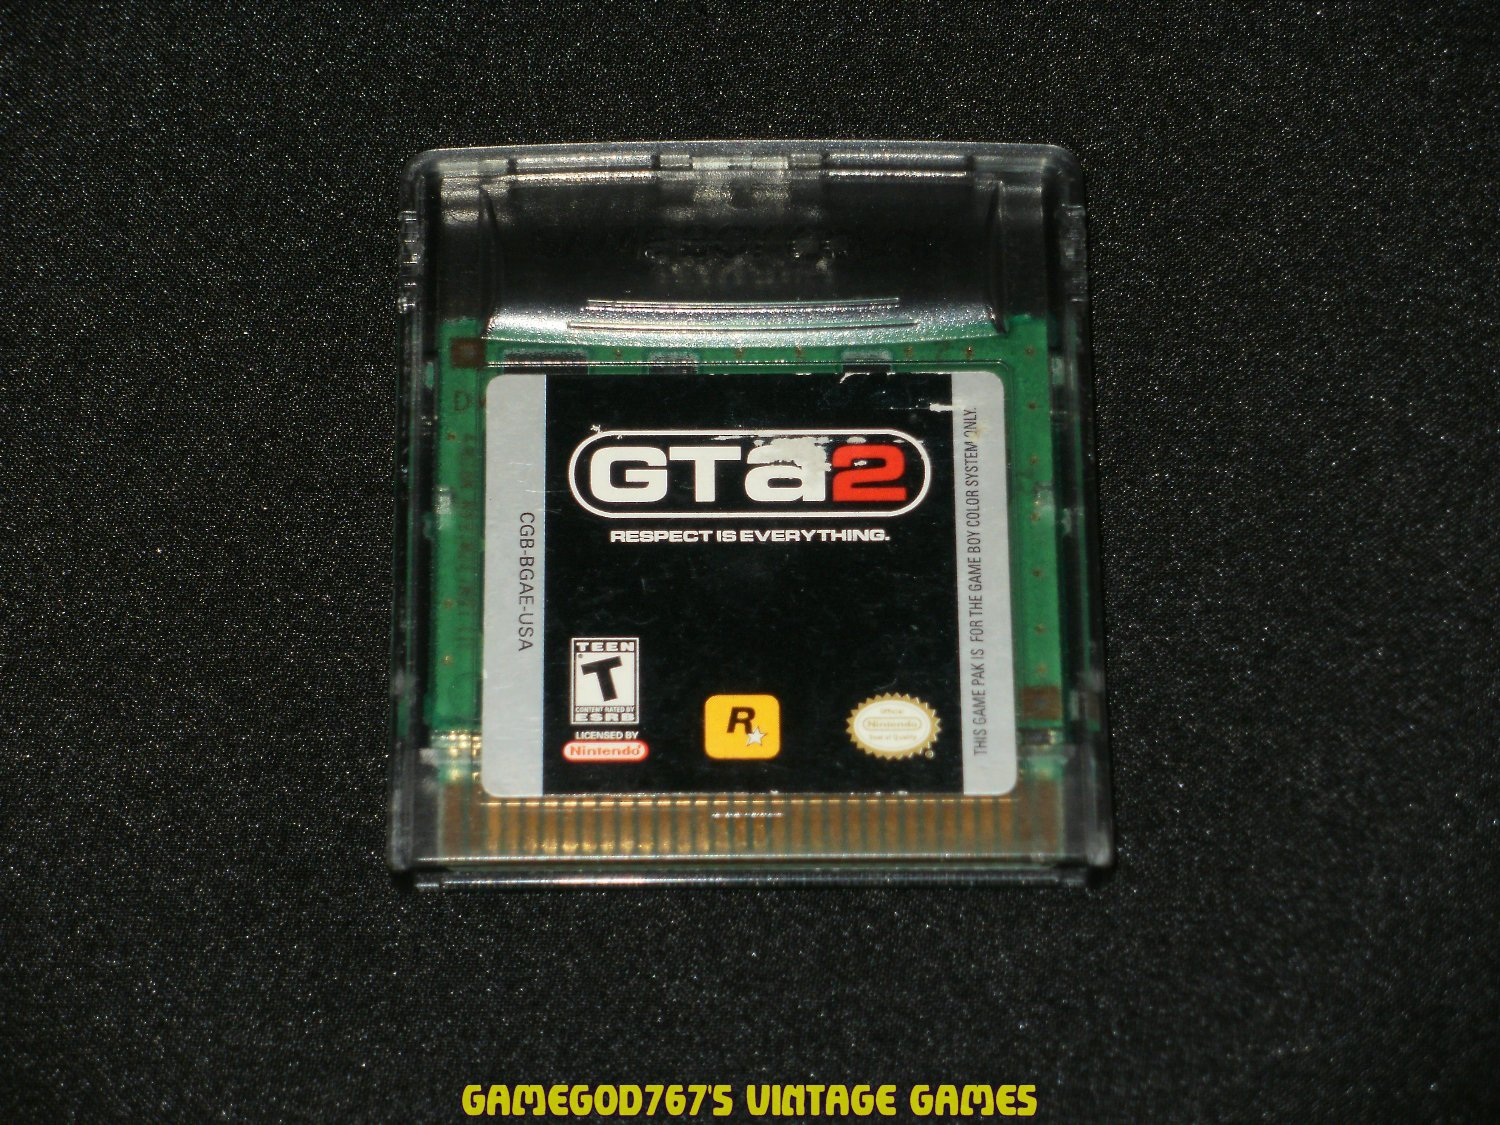 Gta 2 gameboy color - Gta 2 Gameboy Color 17